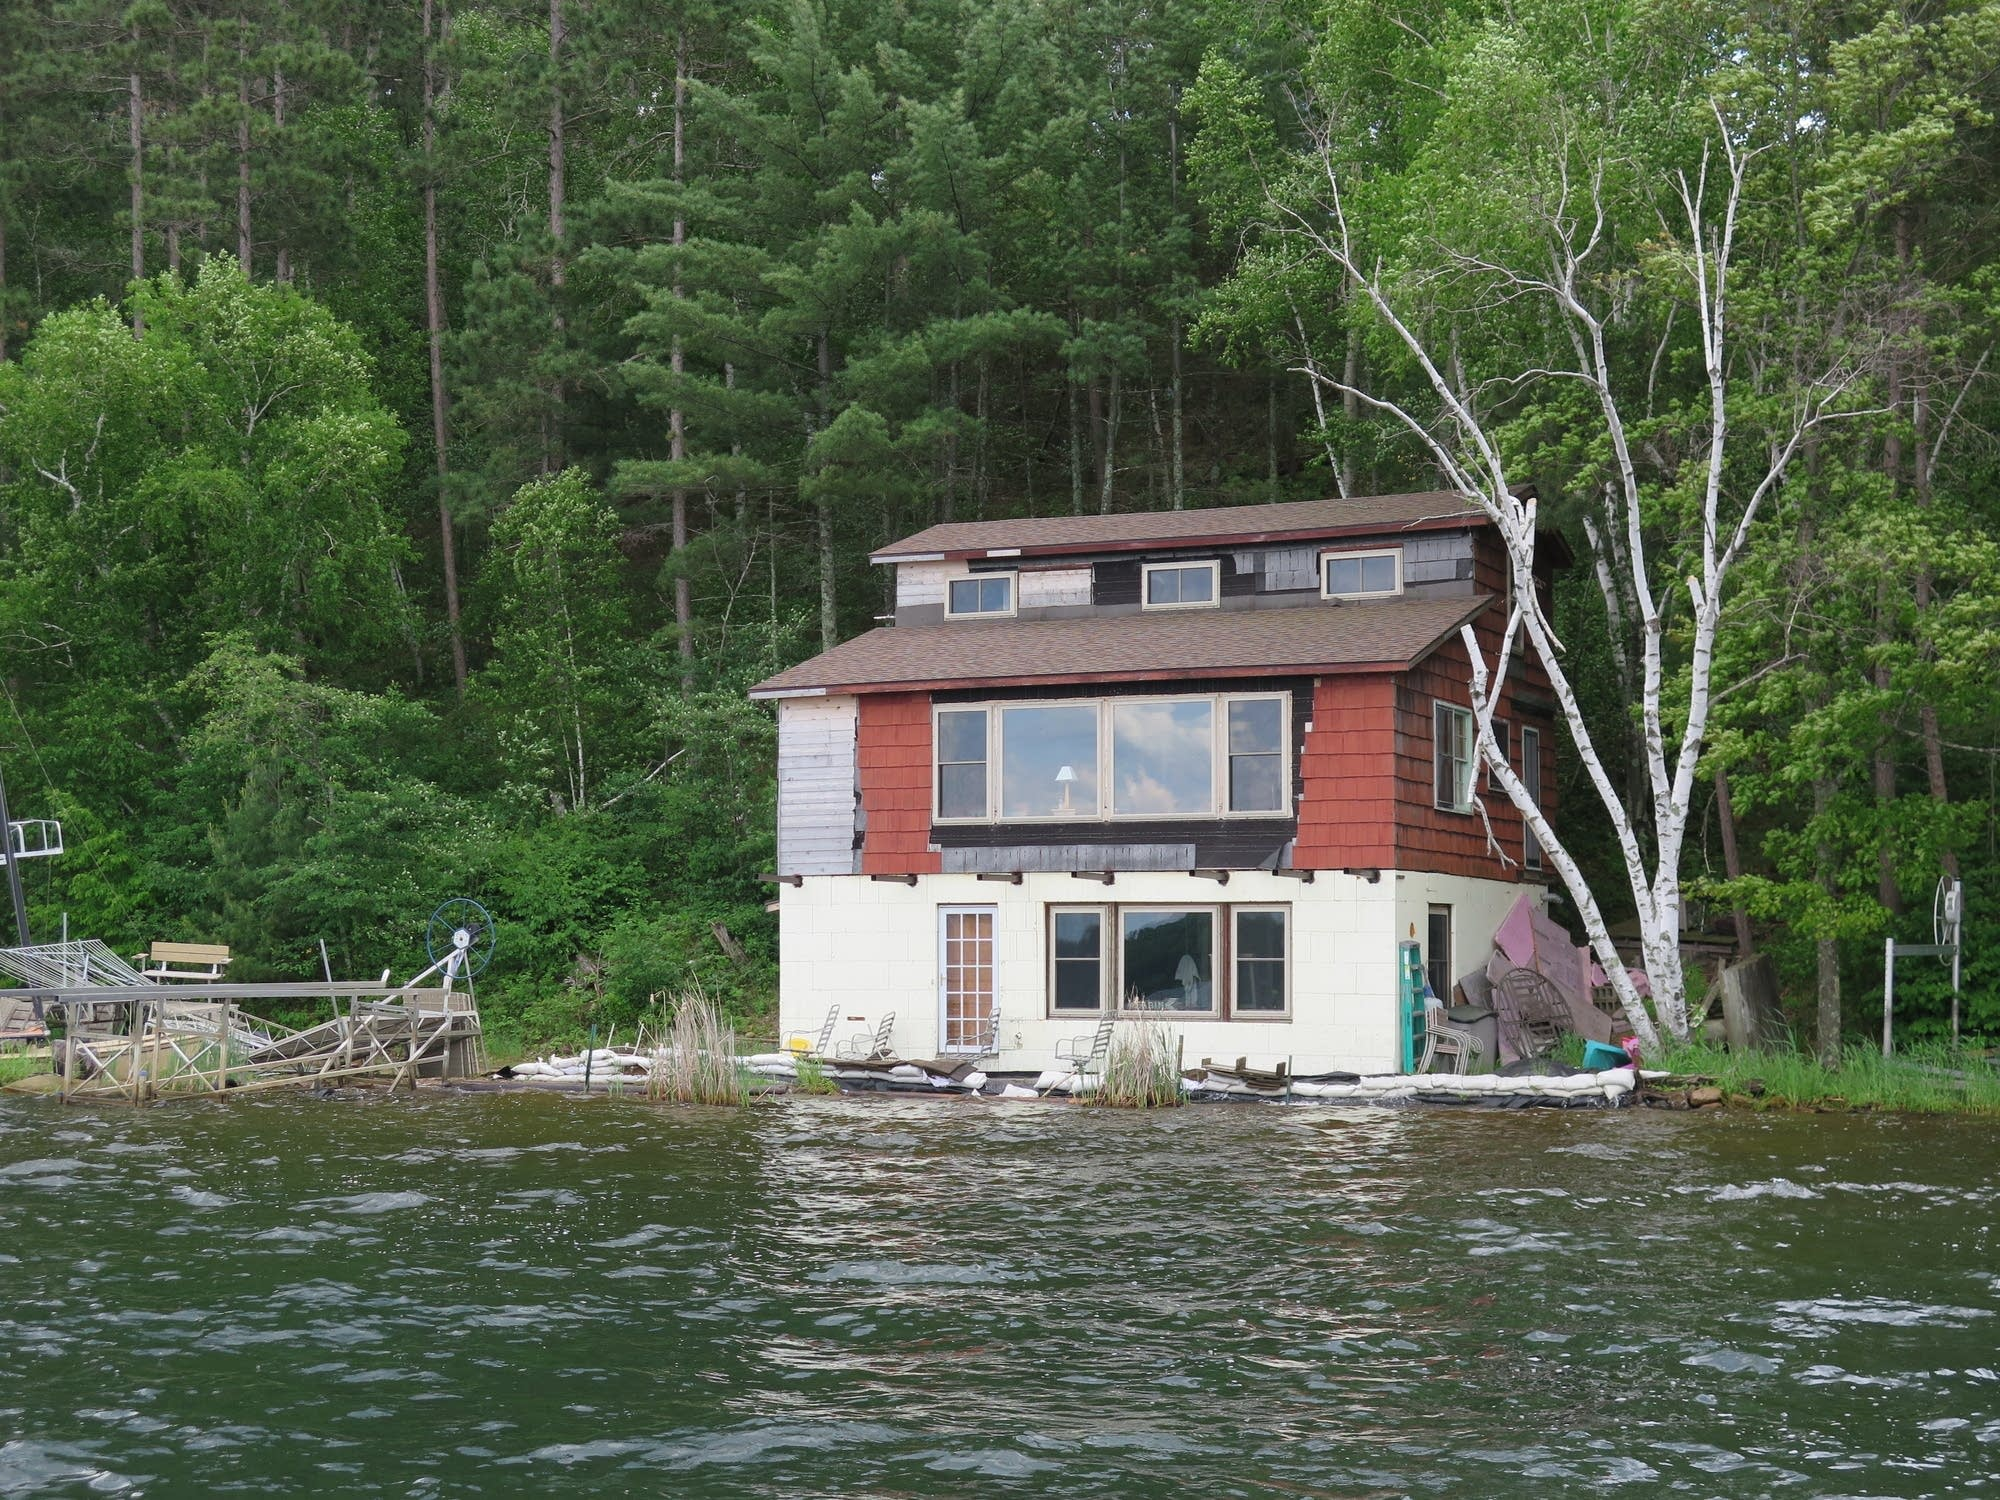 Homes and cabins on Lake Shamineau are threatened by rising lake waters